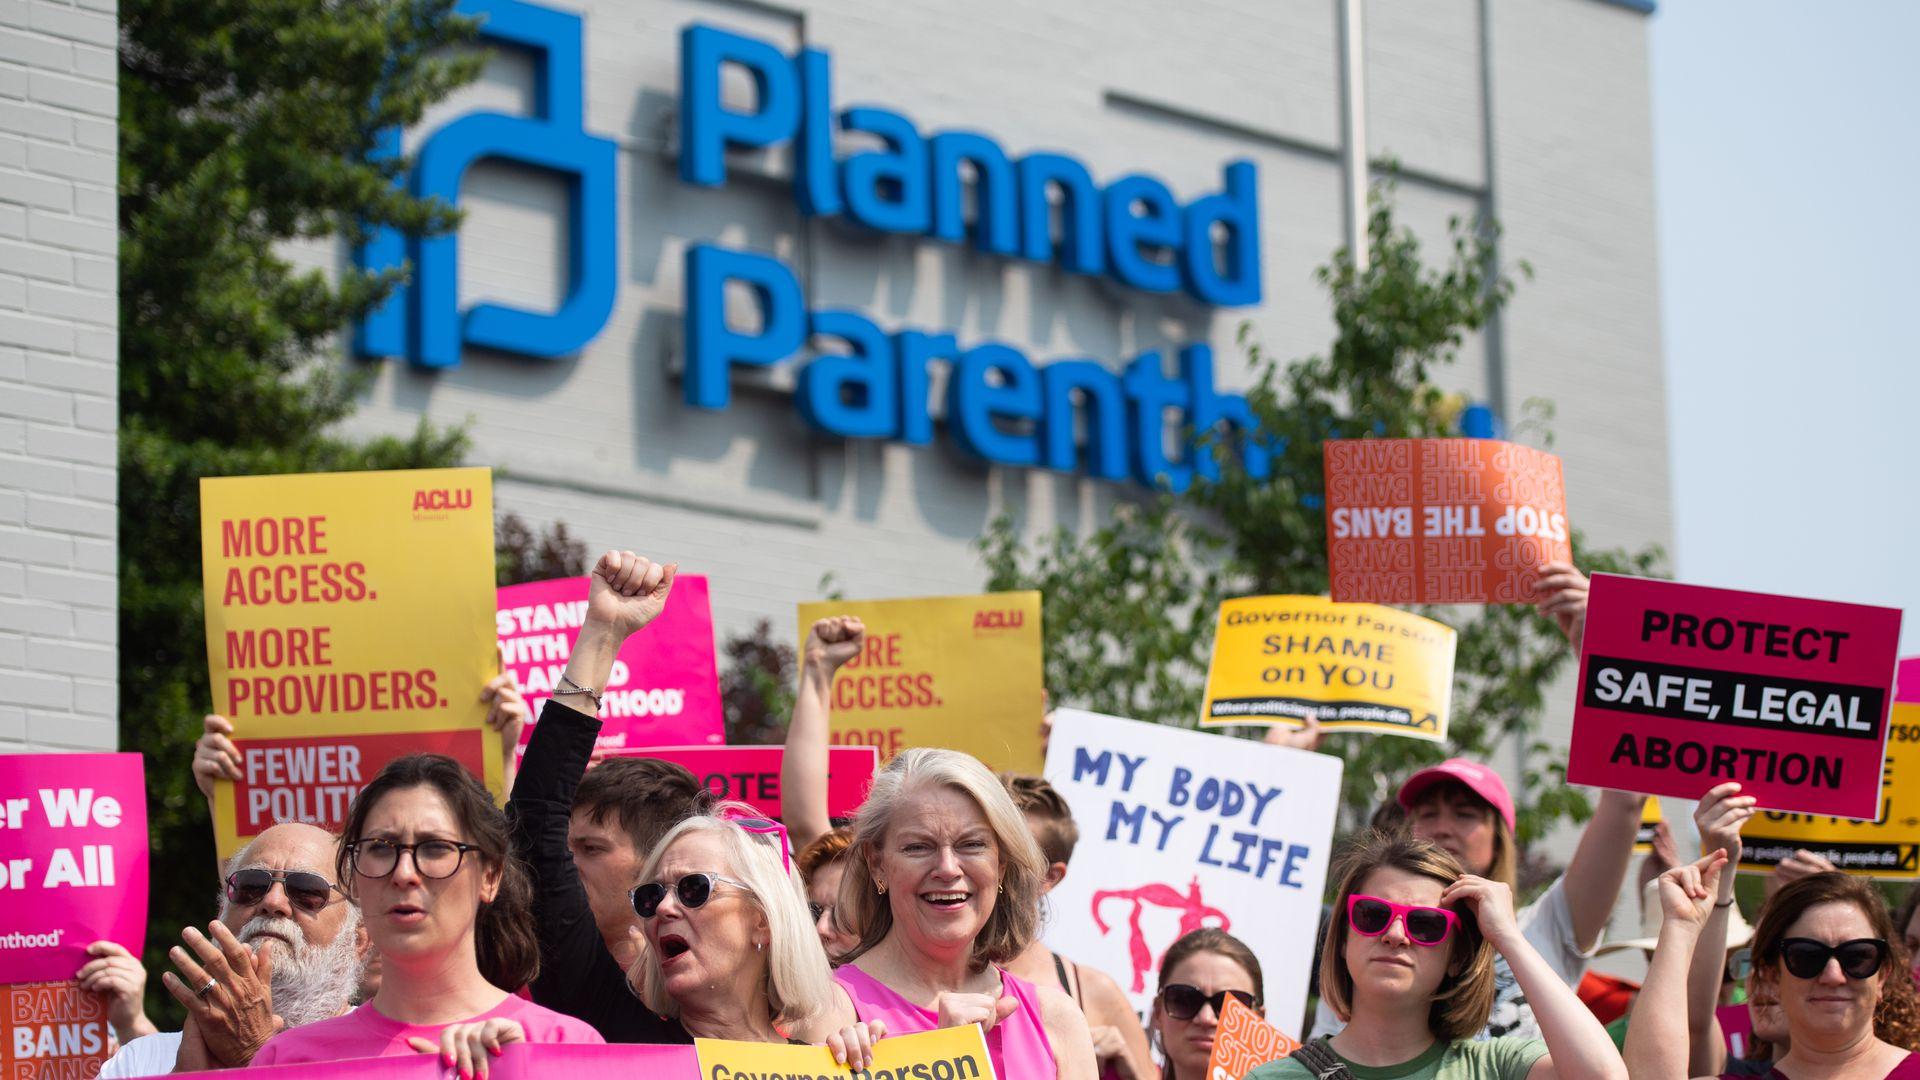 Pro-choice supporters and staff of Planned Parenthood hold a rally outside the Planned Parenthood Reproductive Health Services Center in St. Louis, Missouri, May 31.